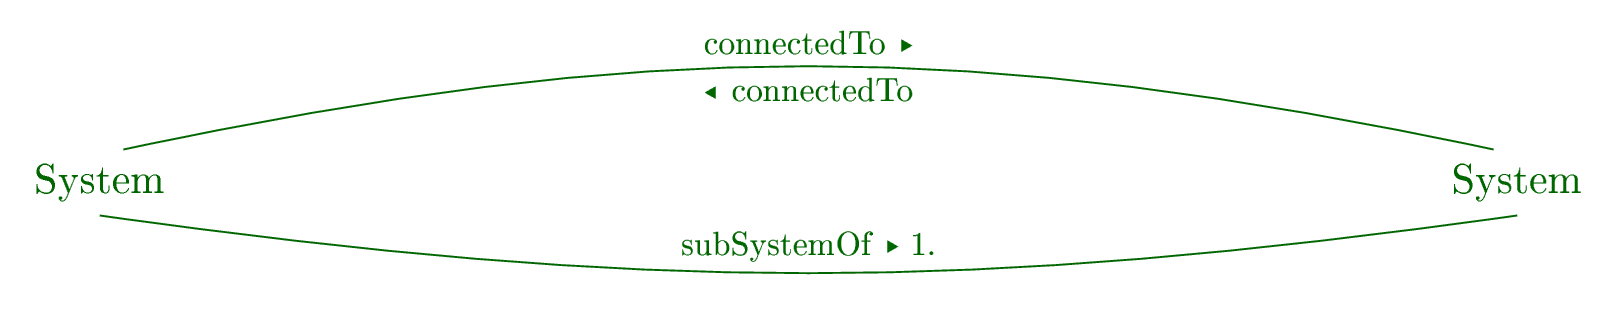 Systems and their connections